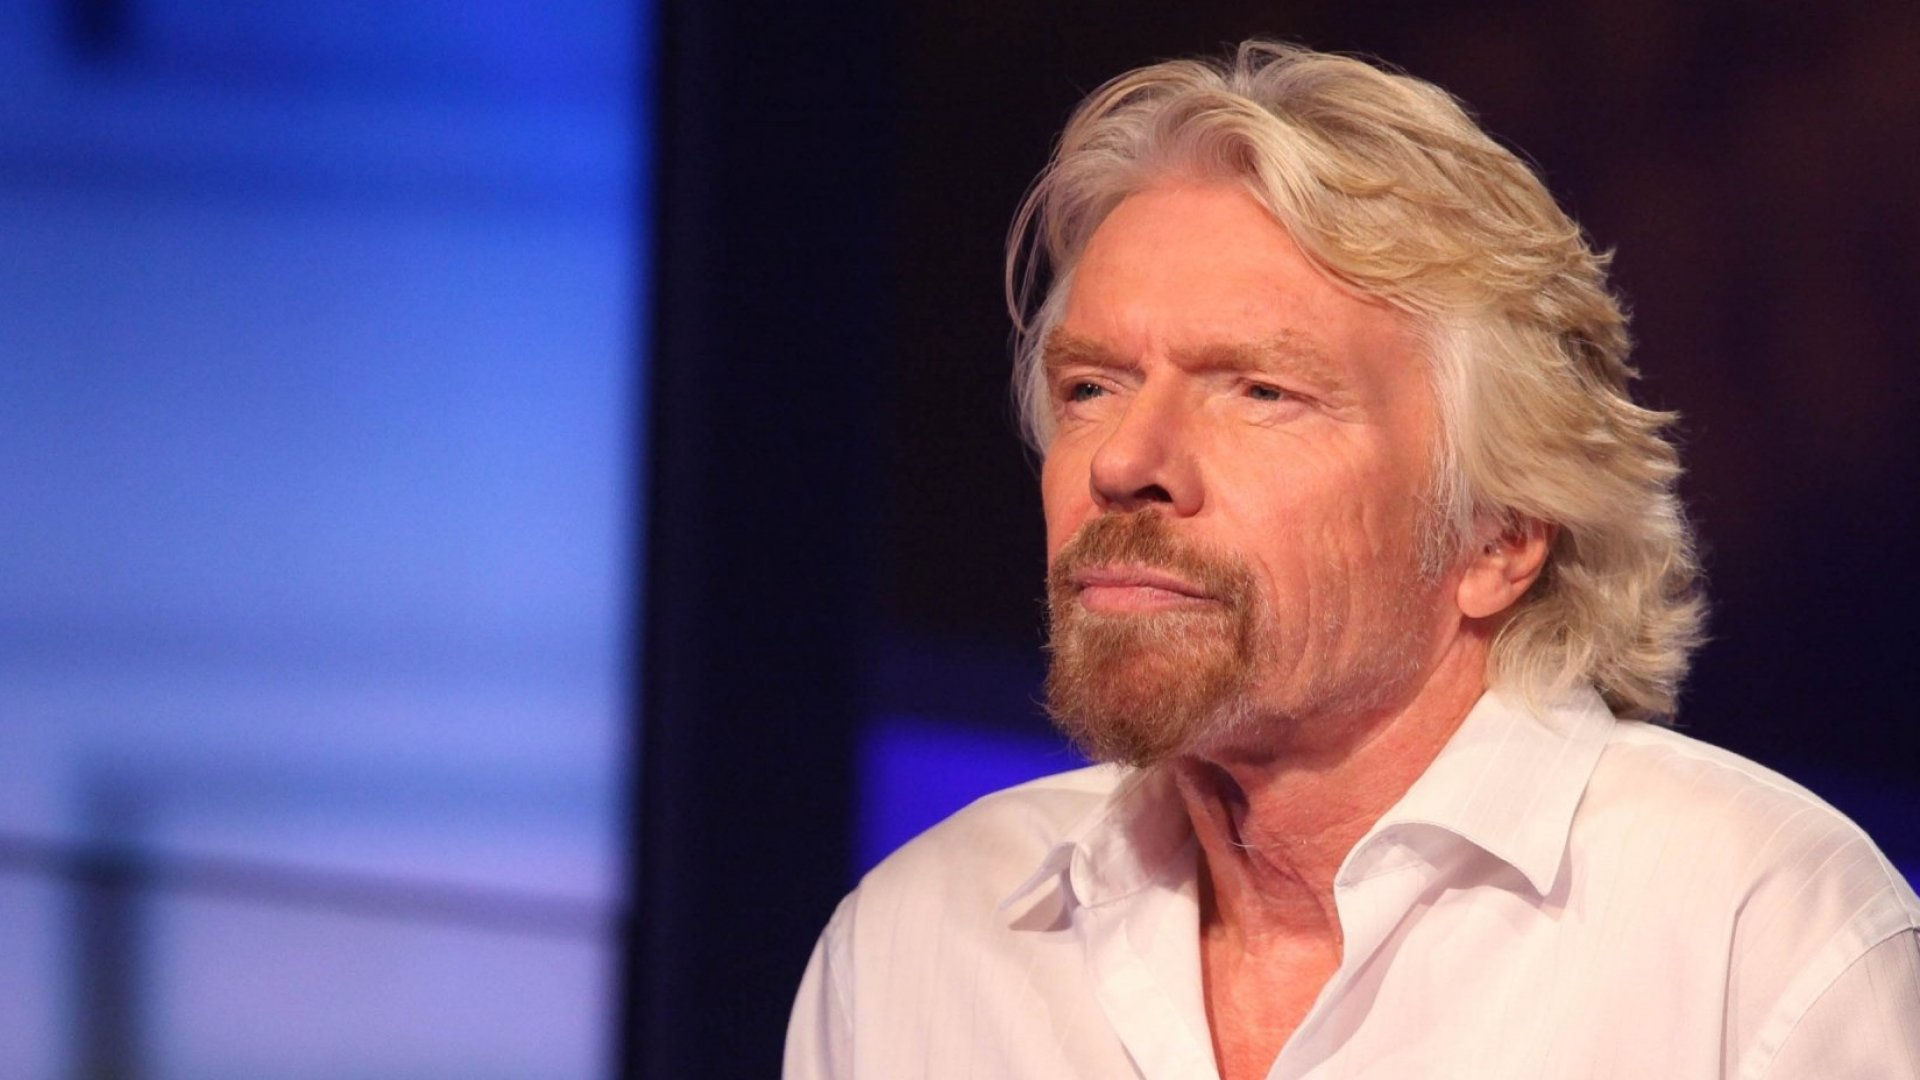 Richard Branson Says Lunch With Trump Left Him 'Disturbed and Saddened'